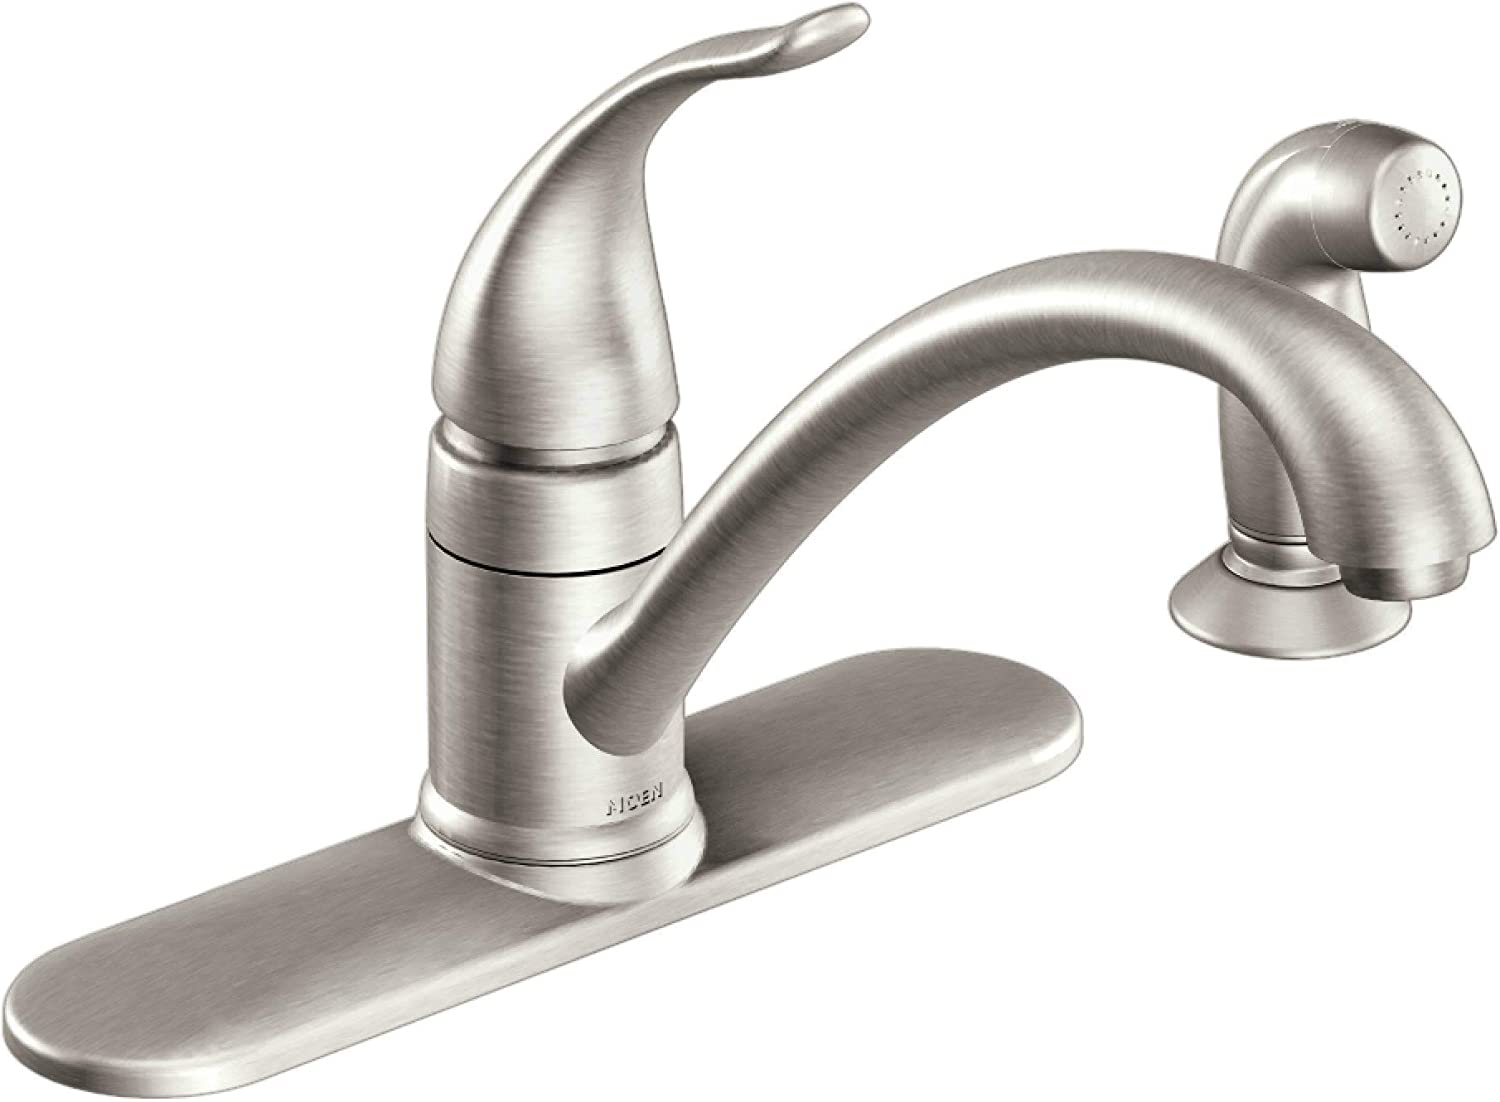 Moen CA87480SRS Kitchen Faucet with Side Spray from the Torrance Collection, Spot Resist Stainless